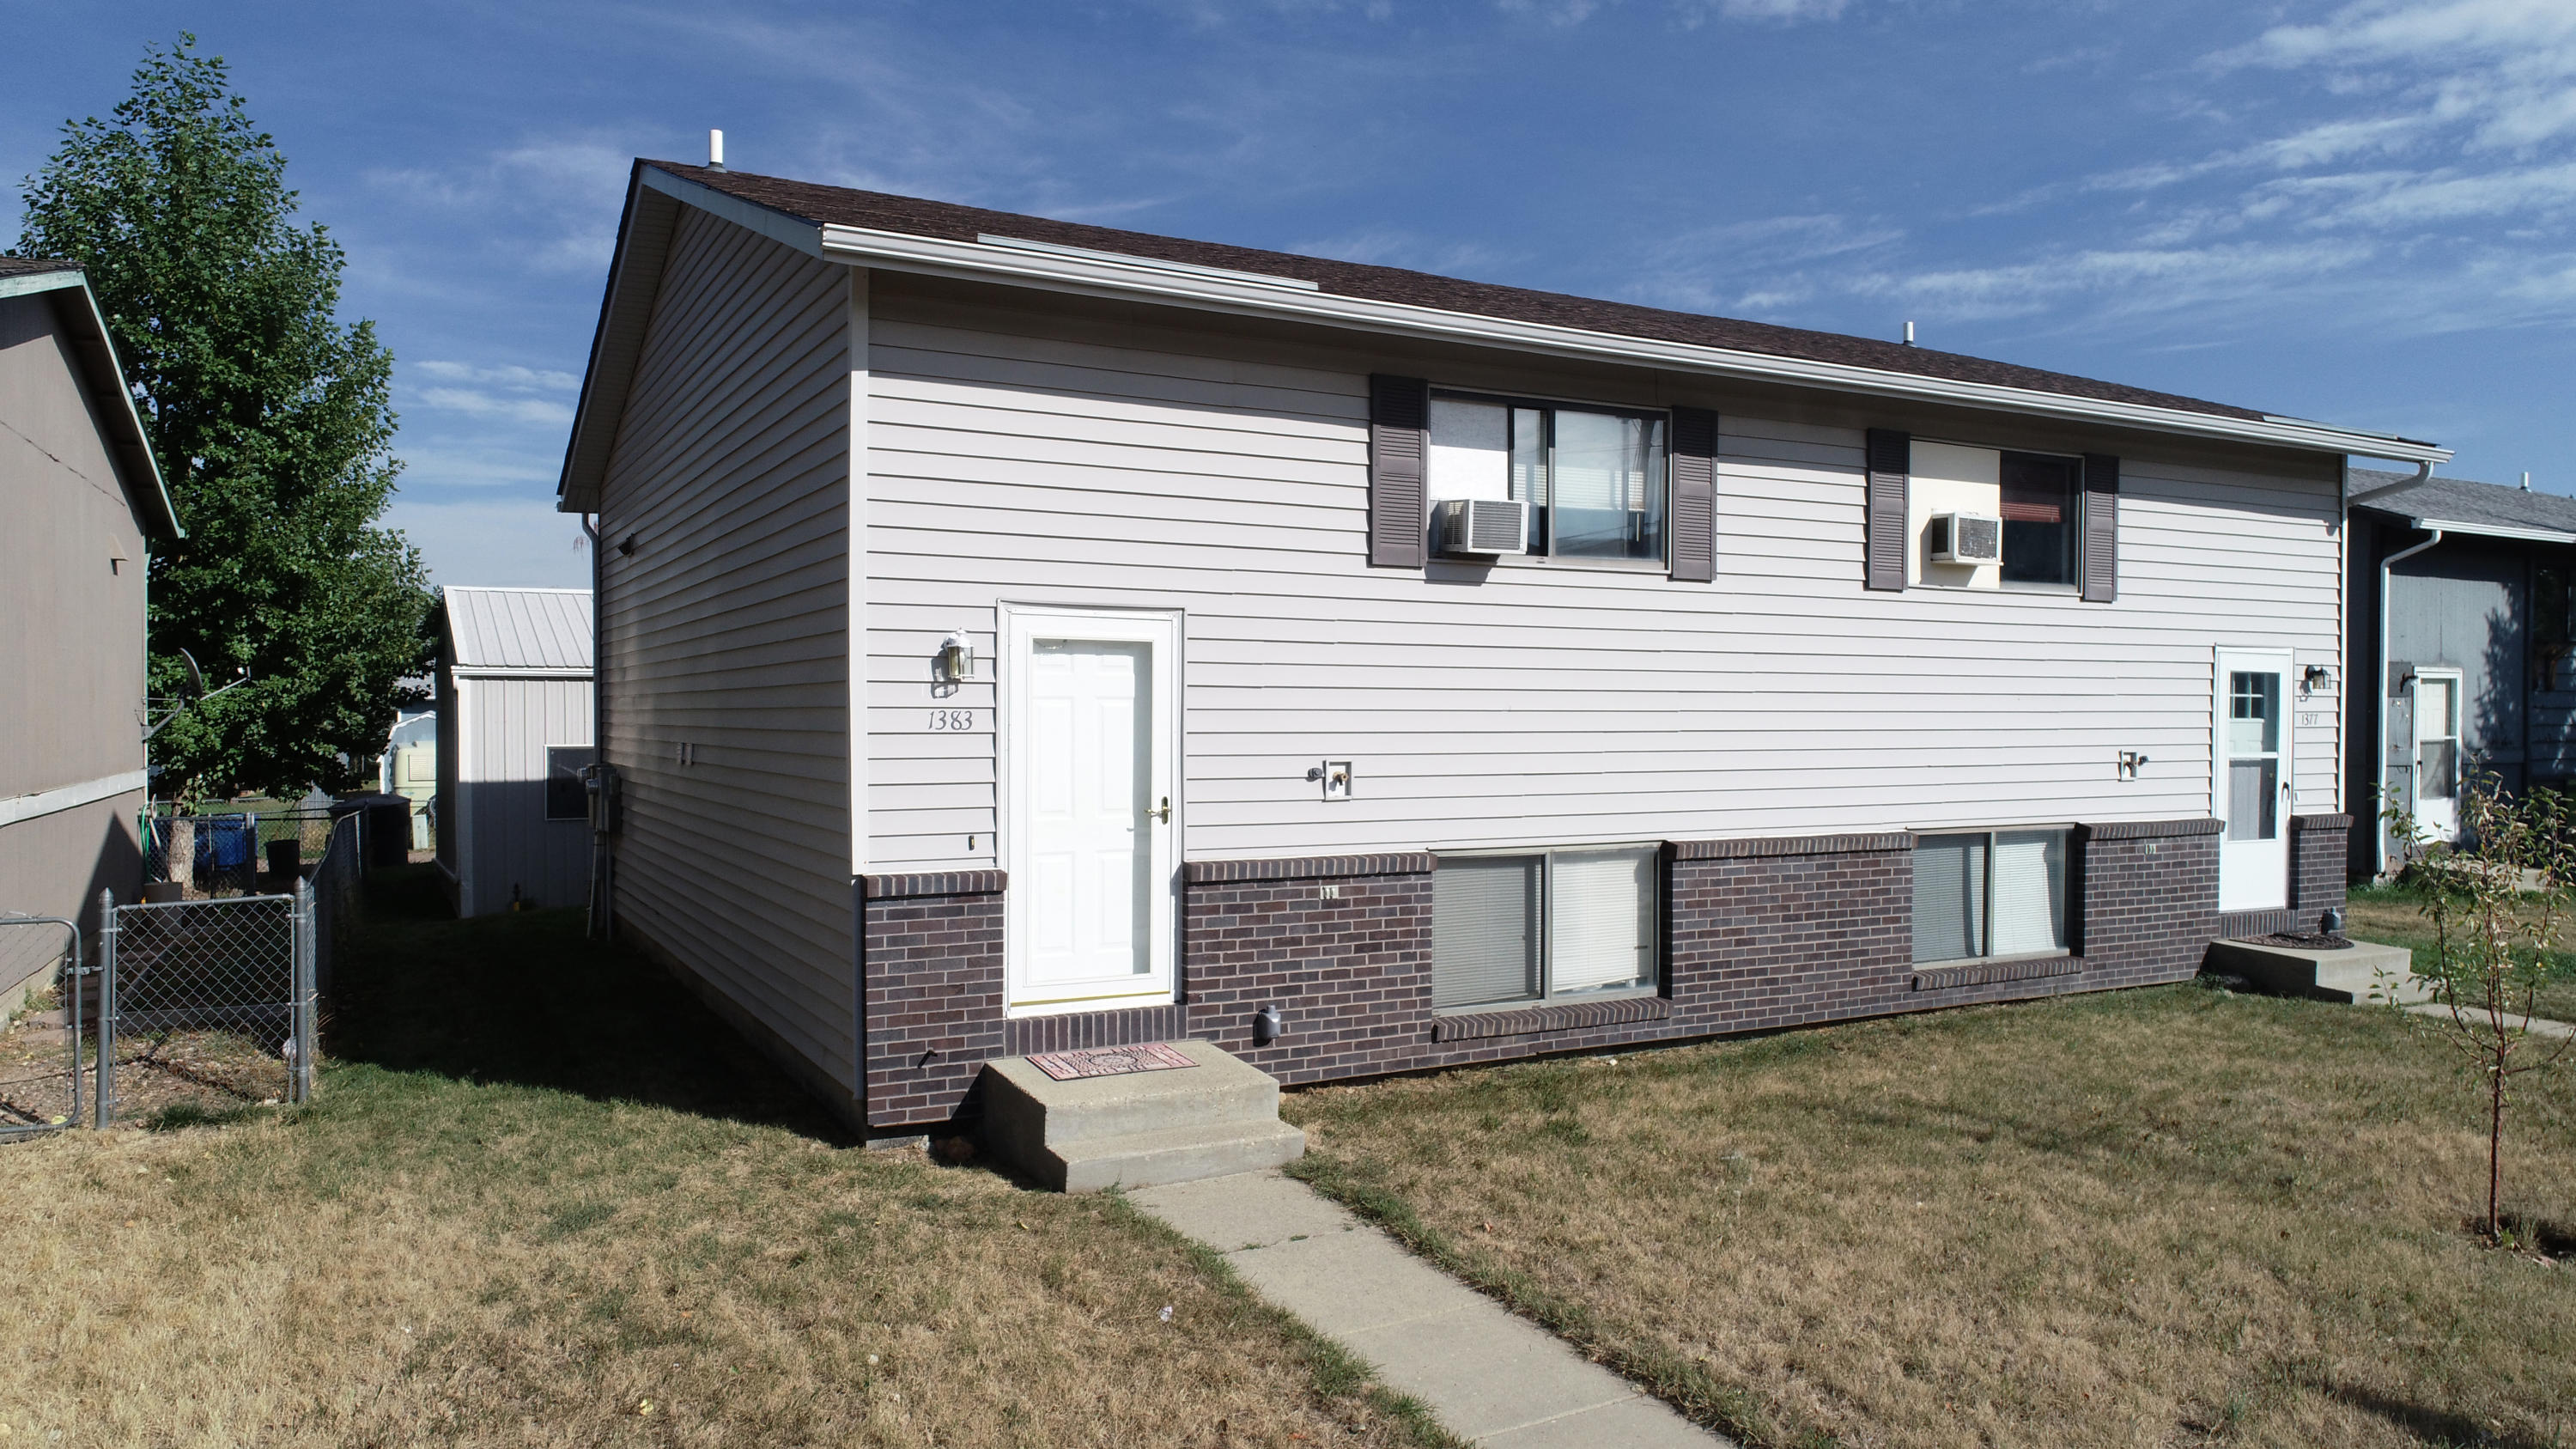 1377/1383 Highland Avenue, Sheridan, Wyoming 82801, ,Multi-Unit,For Sale,Highland,18-987